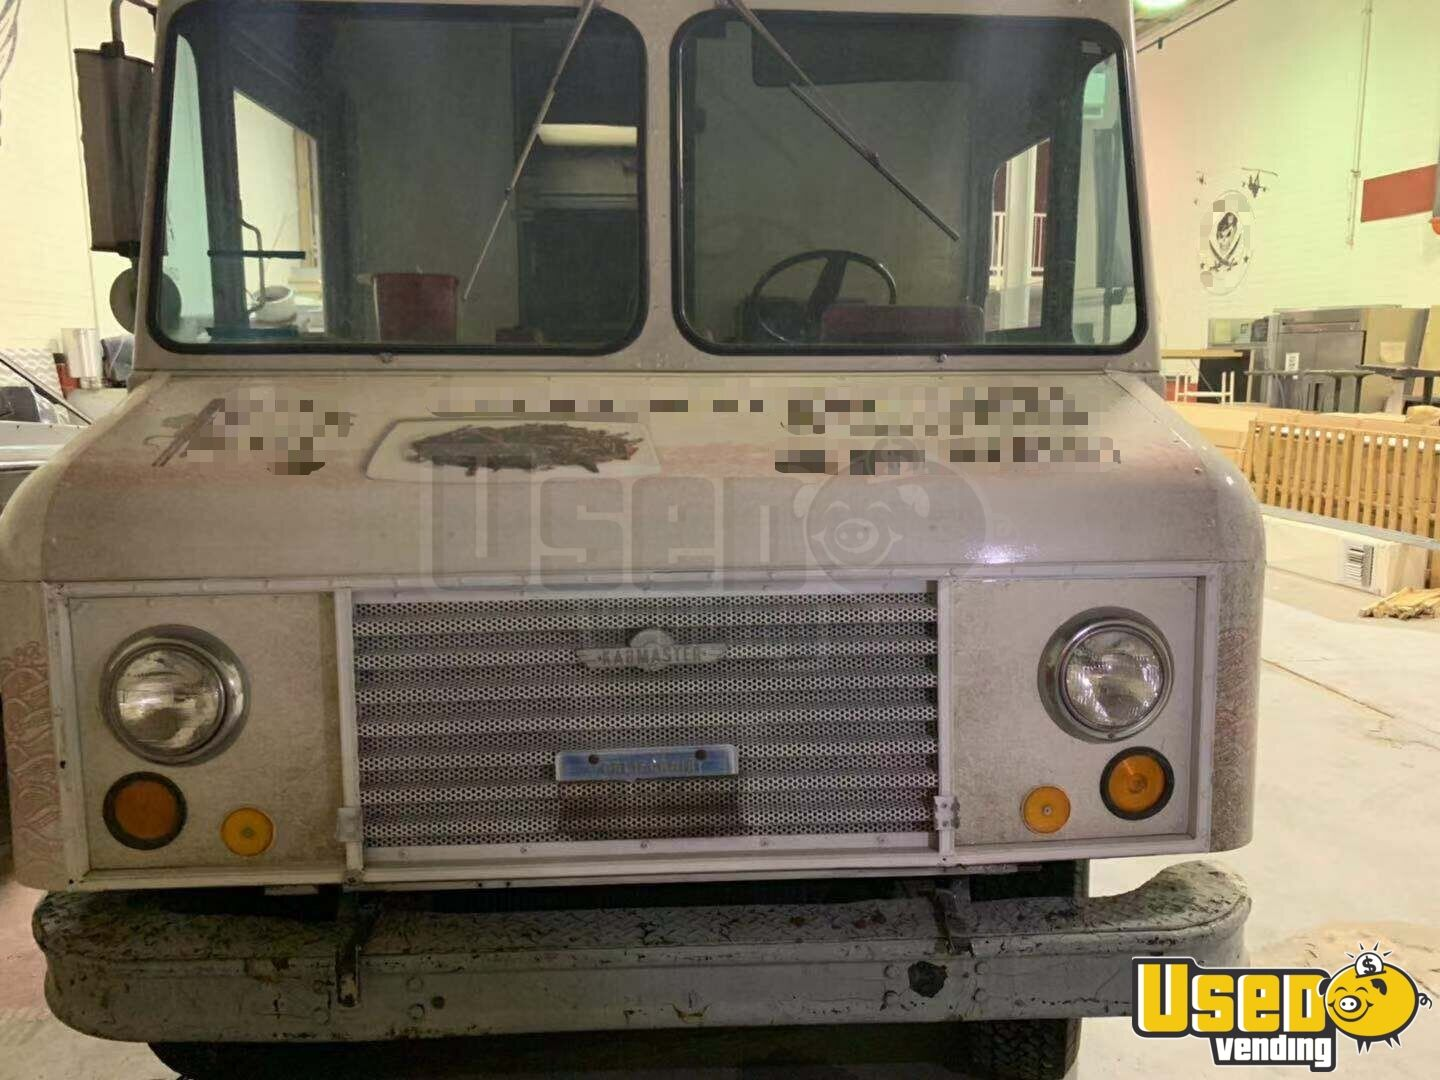 1982 Ford 35c All-purpose Food Truck Concession Window Arizona for Sale - 2